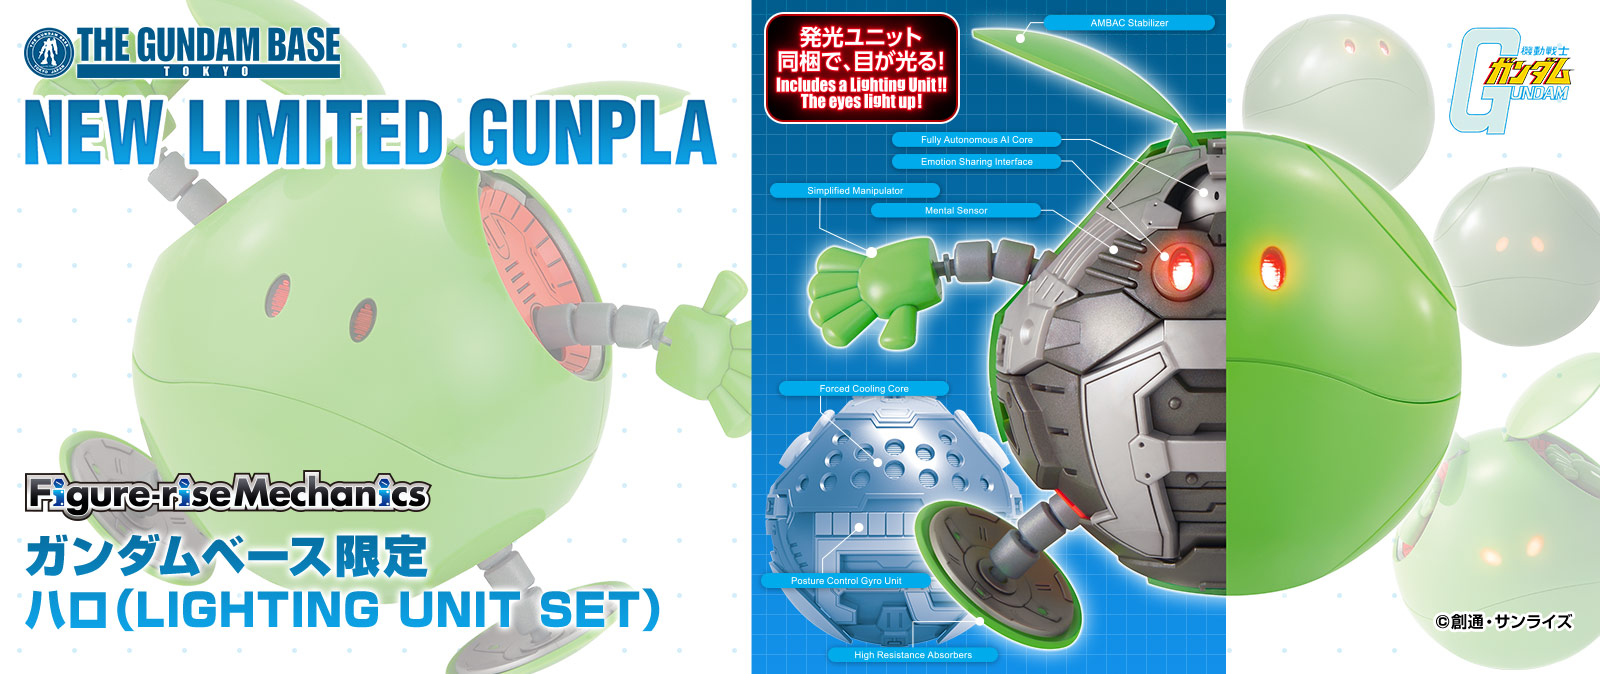 Figure-rise Mechanics ガンダムベース限定 ハロ (LIGHTING UNIT SET)